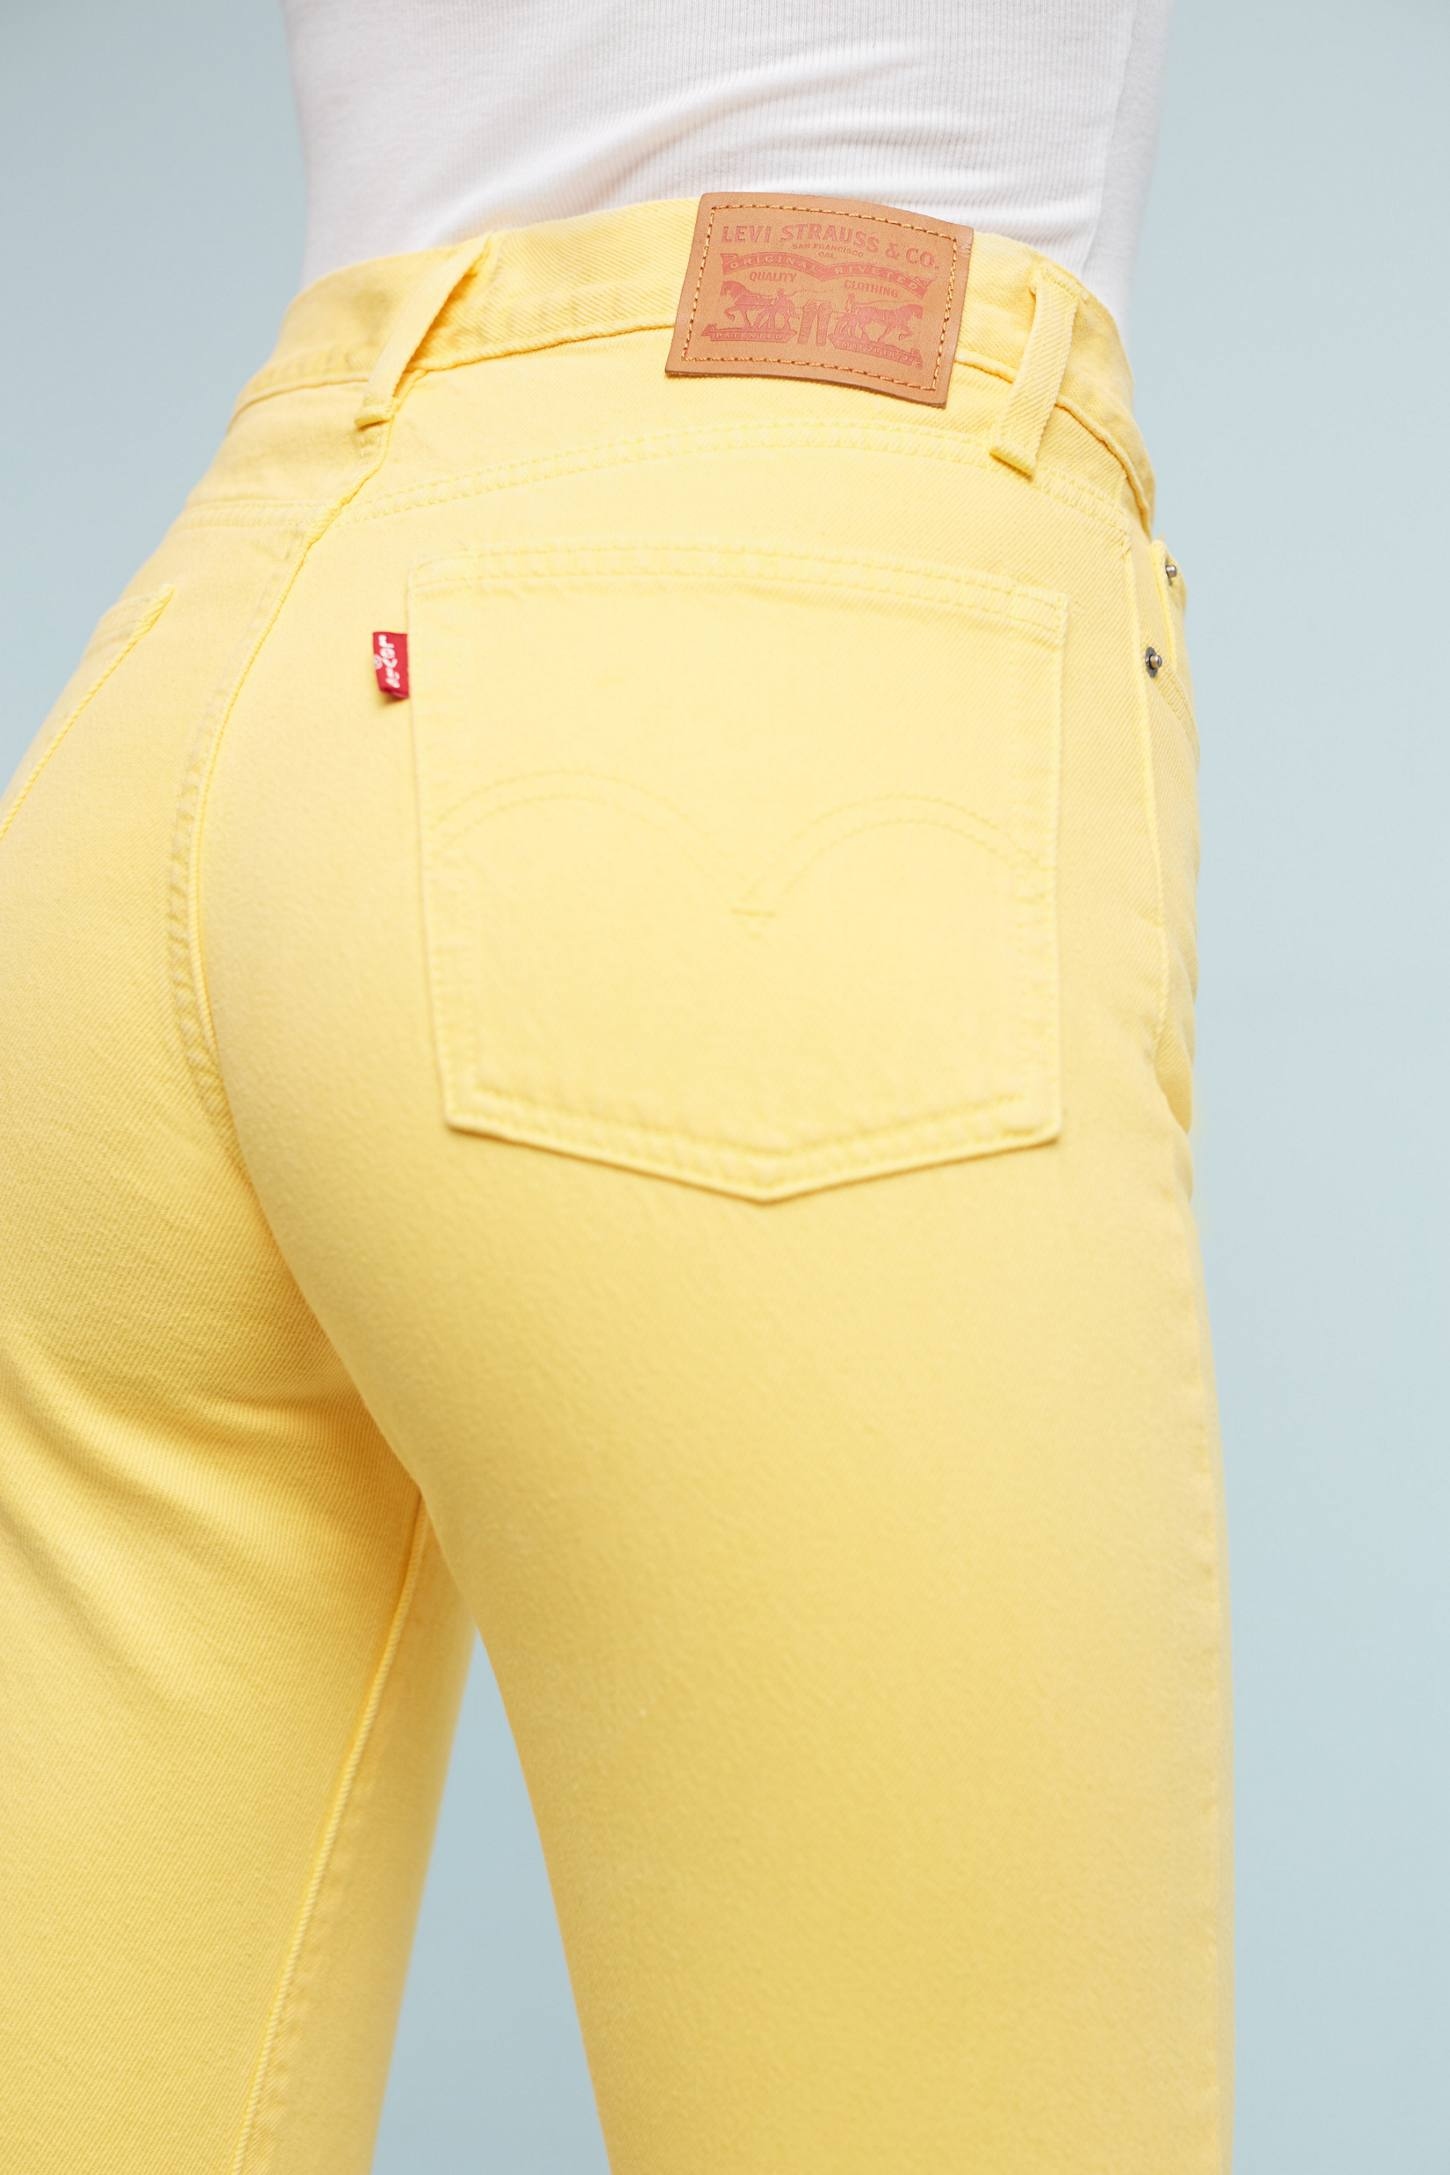 Slide View: 4: Levi's Wedgie Icon High-Rise Jeans